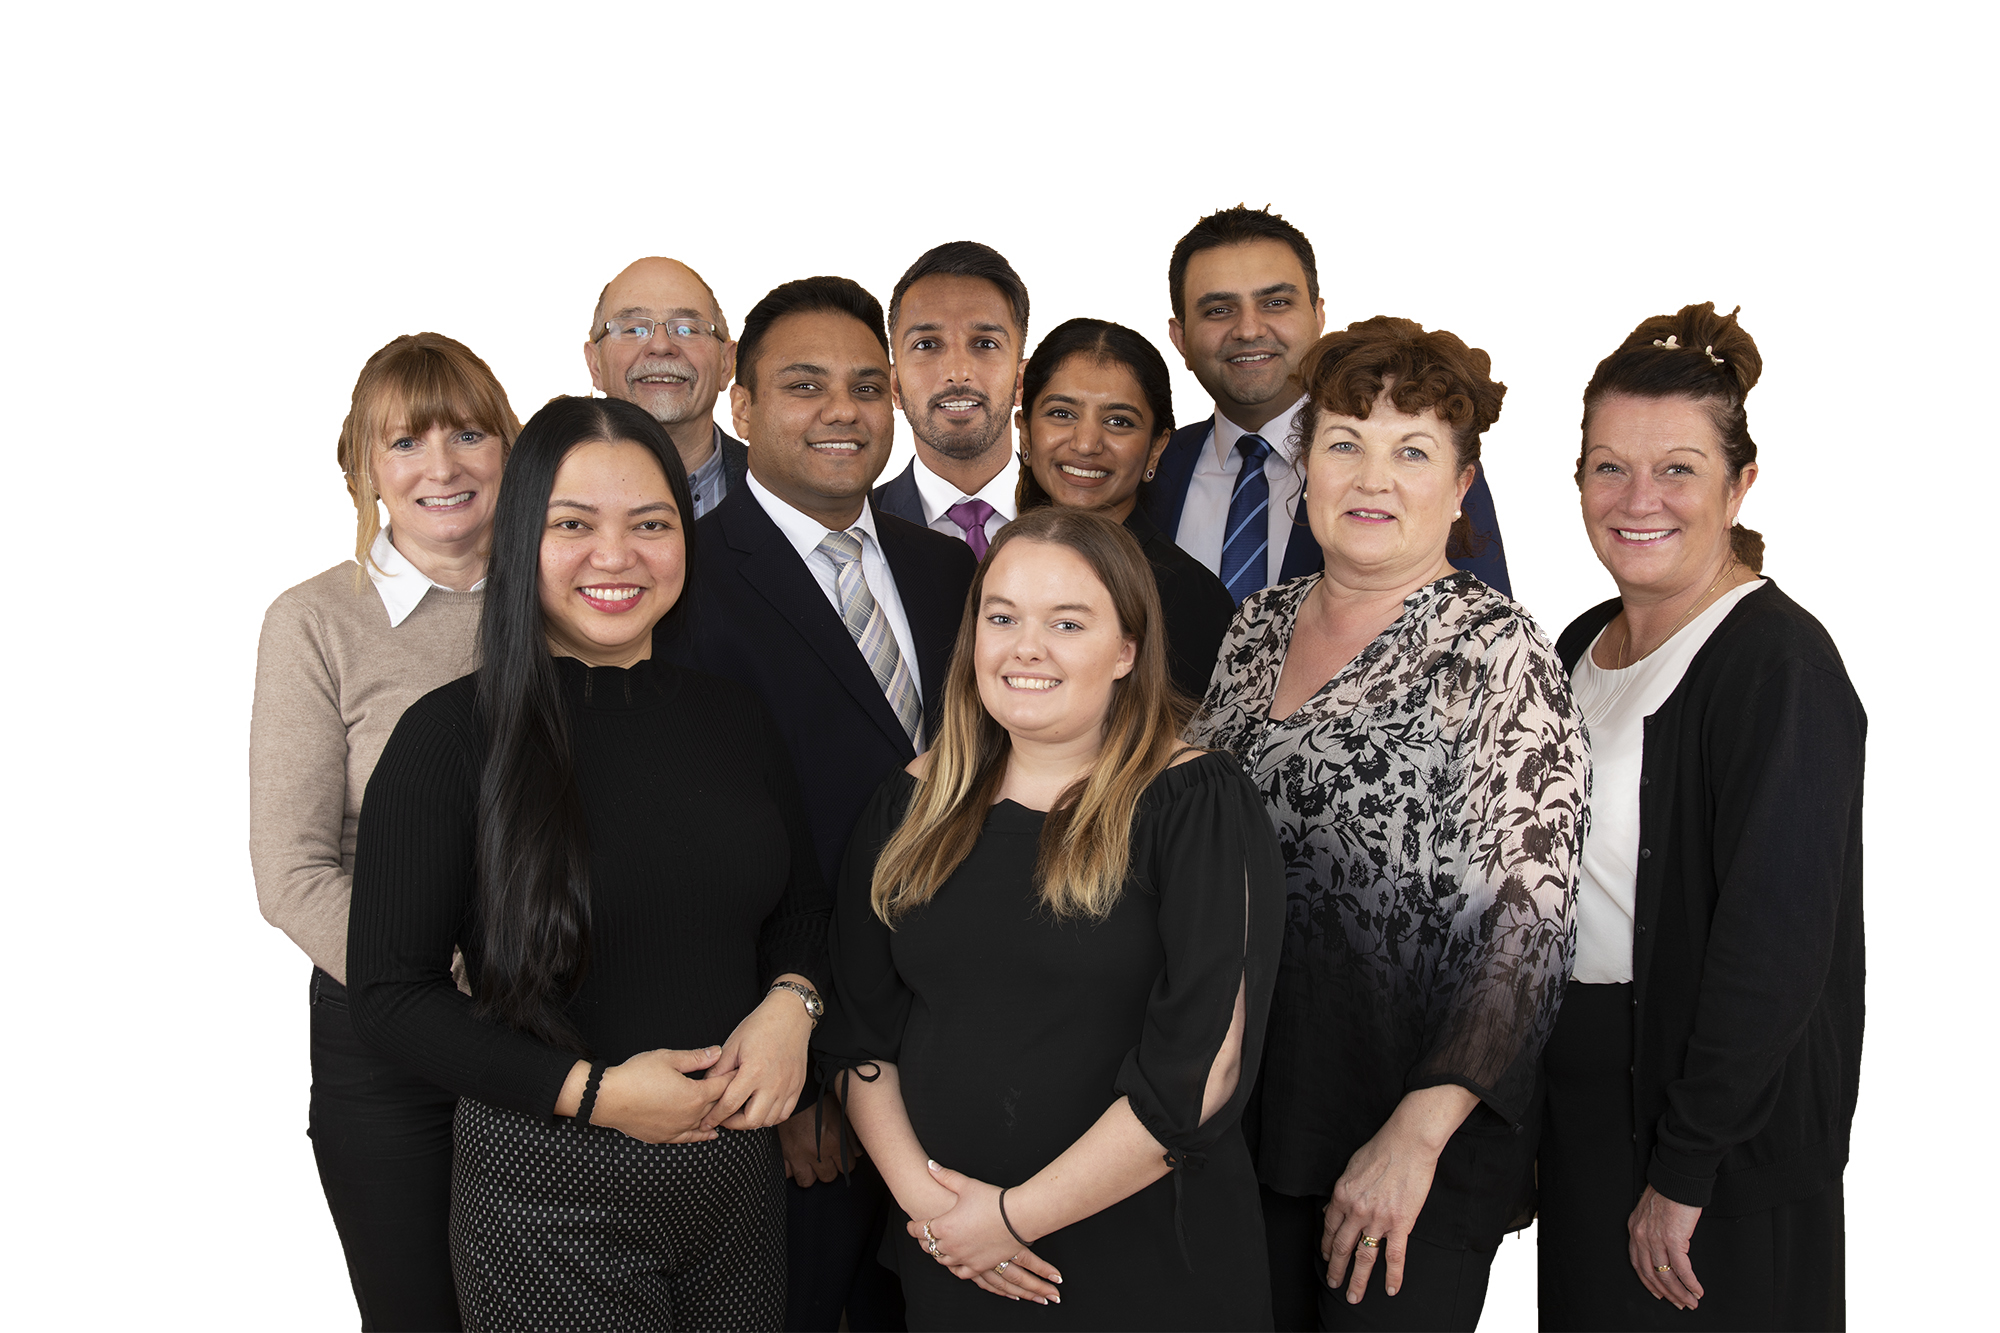 Business team photograph